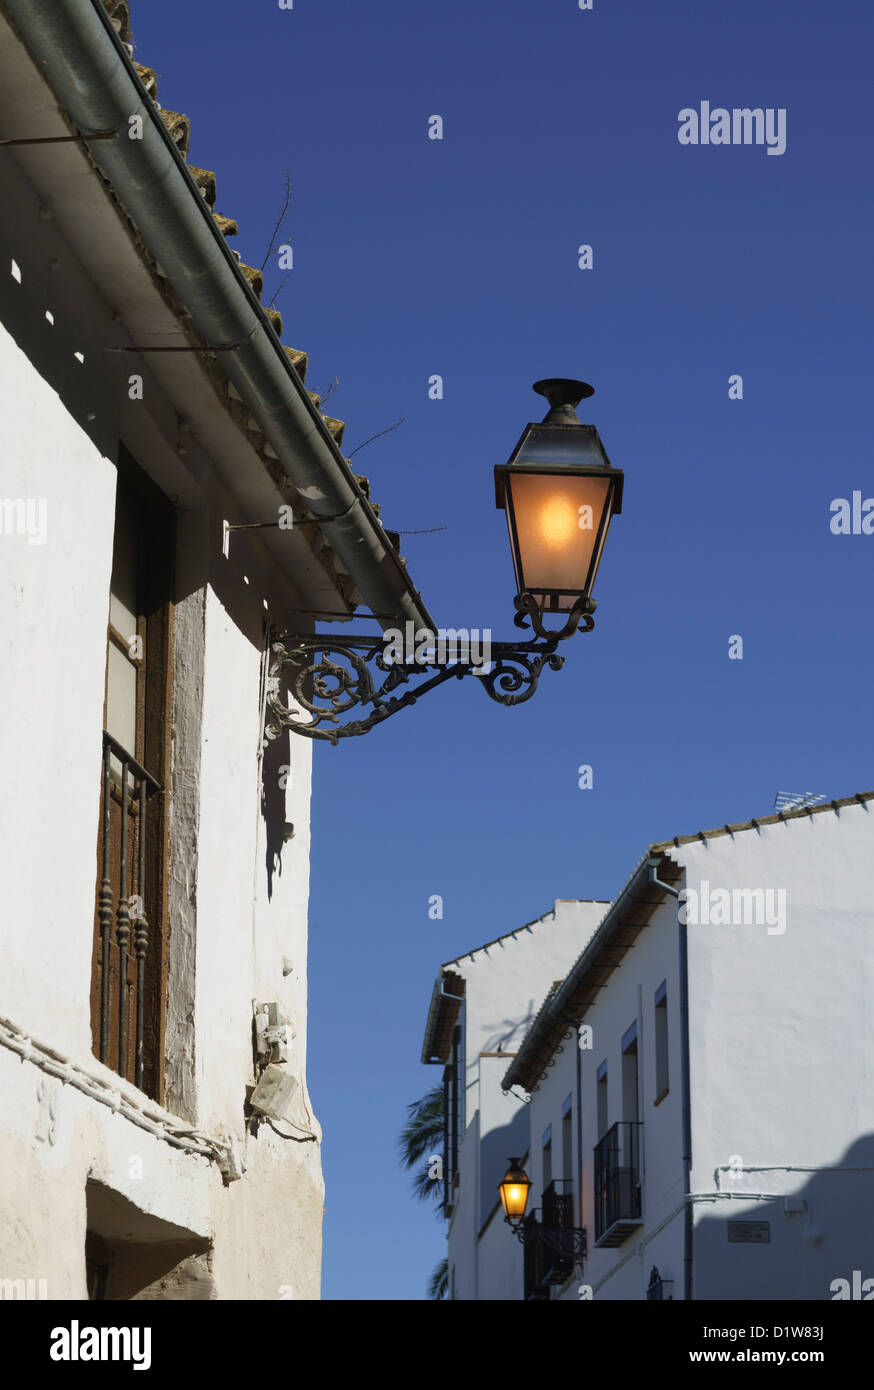 Spain, Andalucia - Antequera. A street light burns in bright daylight. - Stock Image